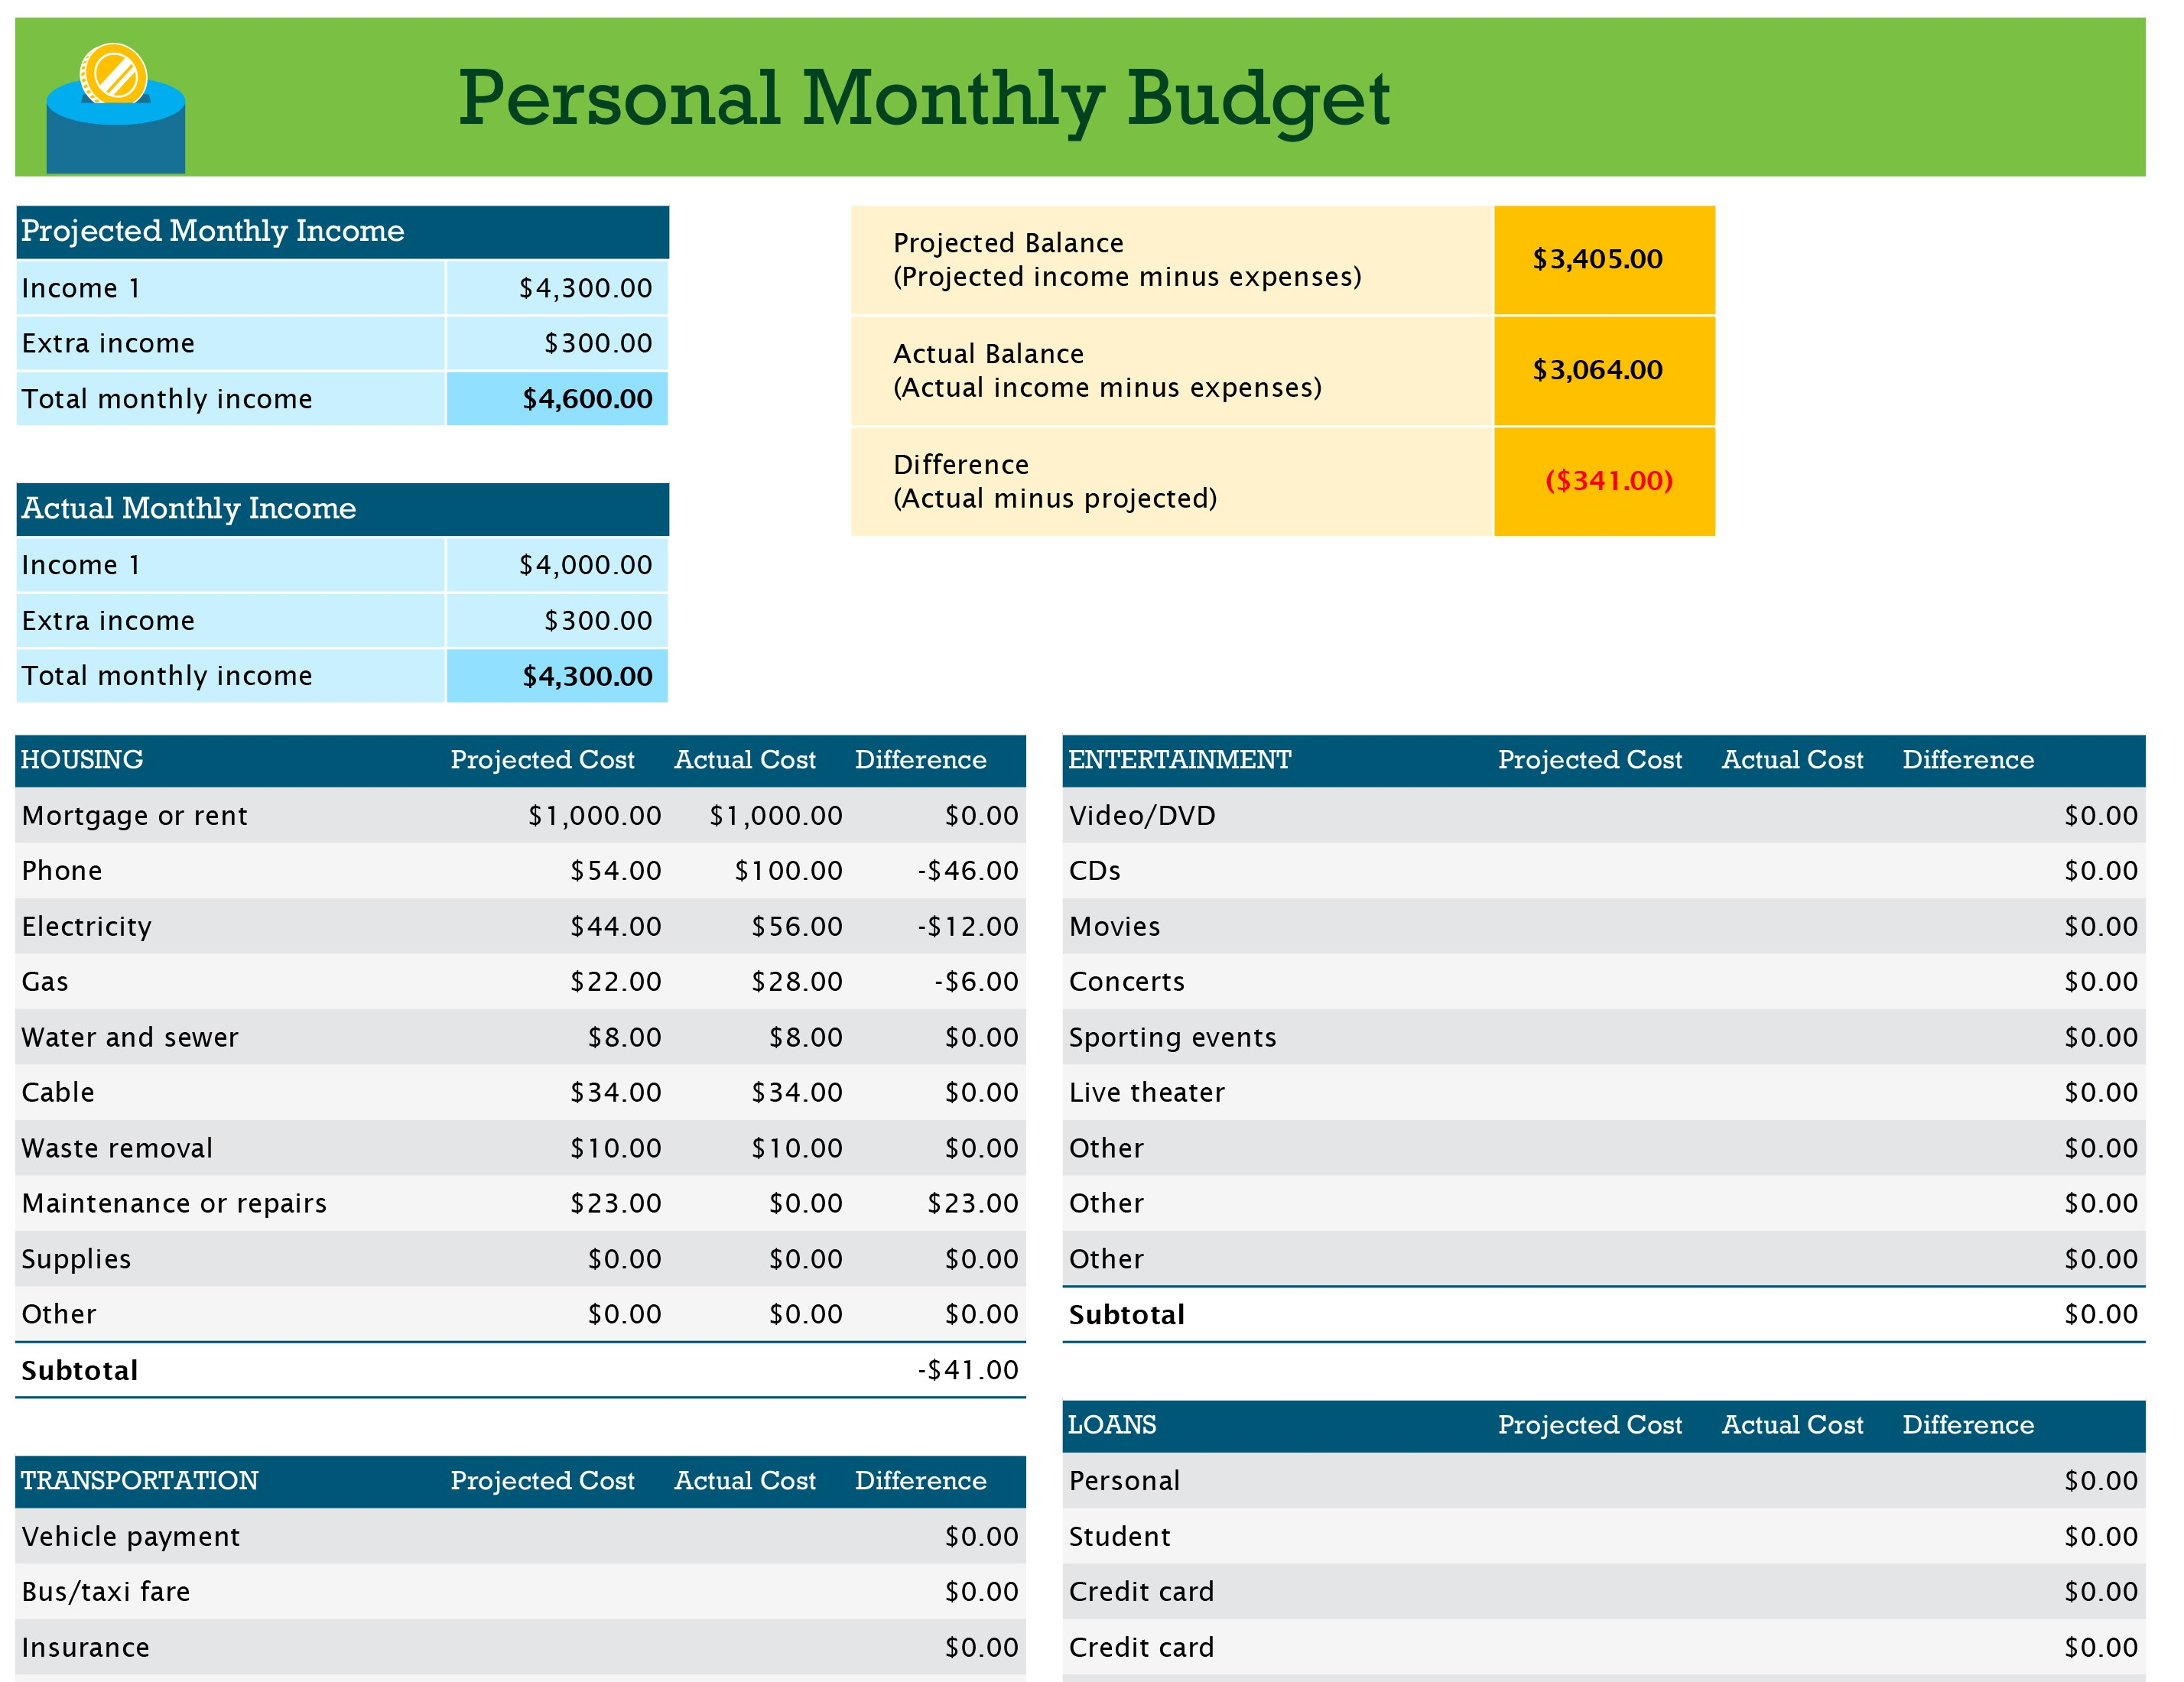 Personal Monthly Bills Spreadsheet Template Excel With Monthly Bills Spreadsheet Template Excel Free Download